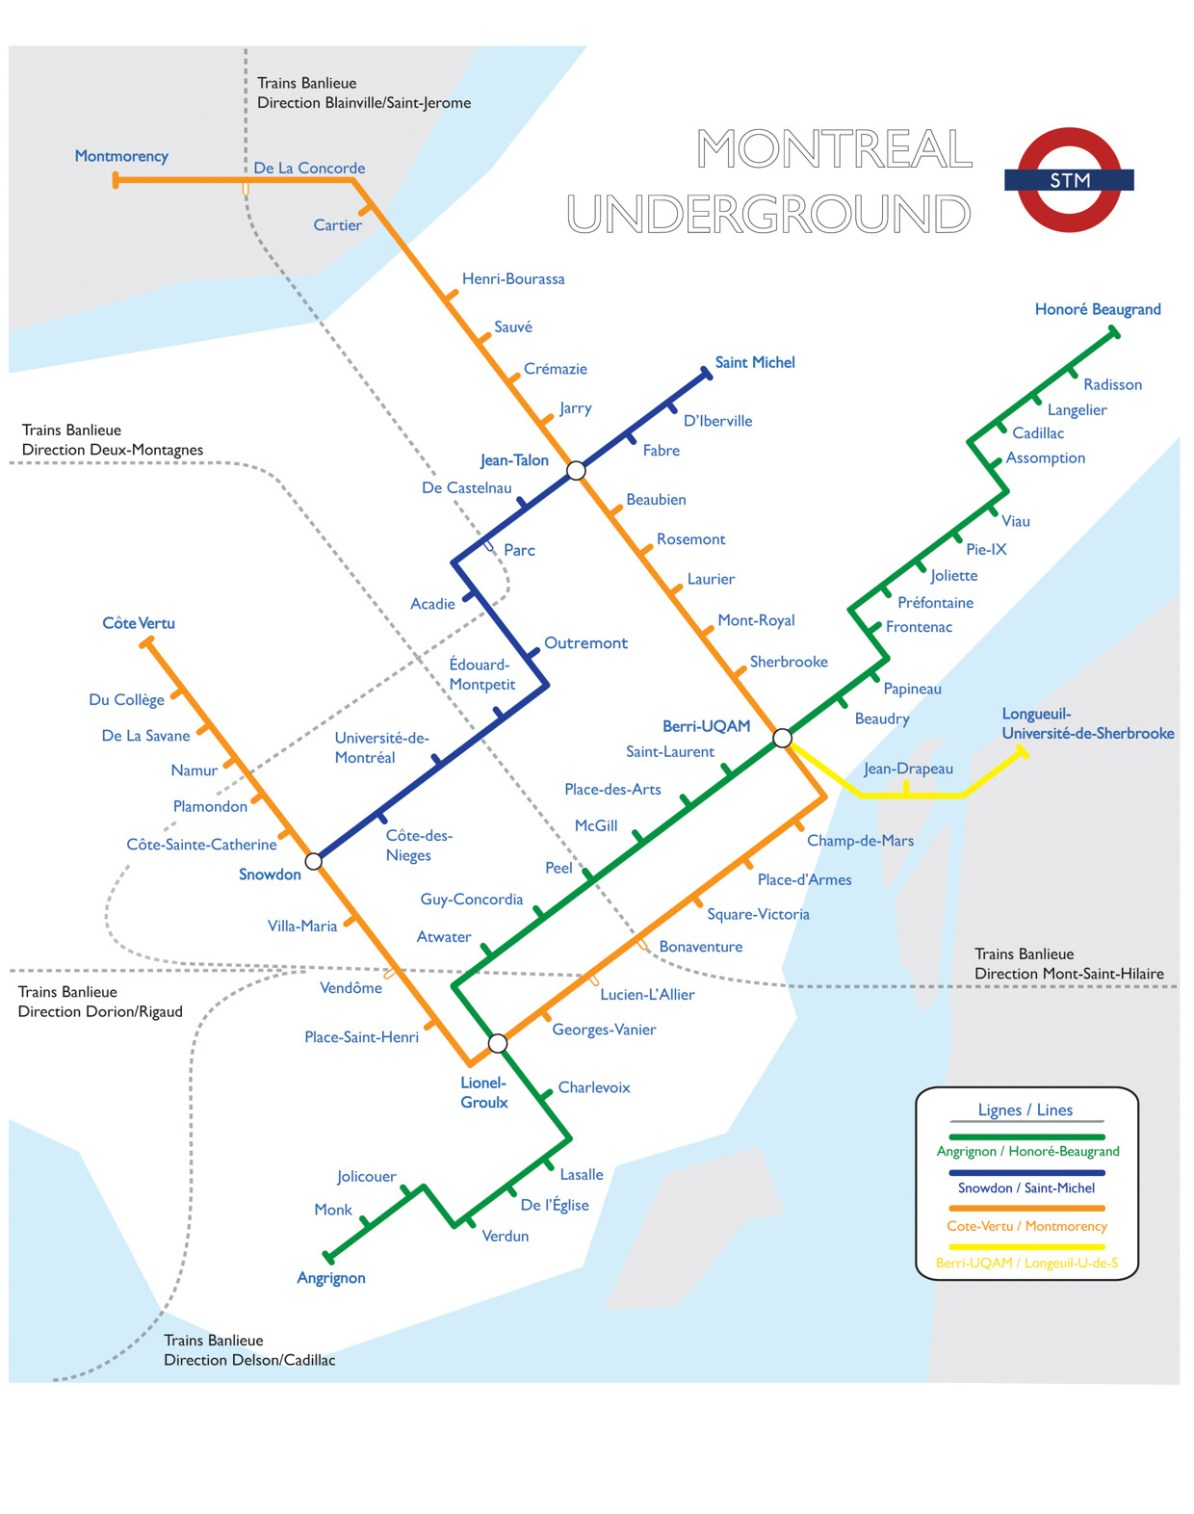 Montrrsl Subway Map.Transit Maps Unofficial Map Montreal Metro In The Style Of The